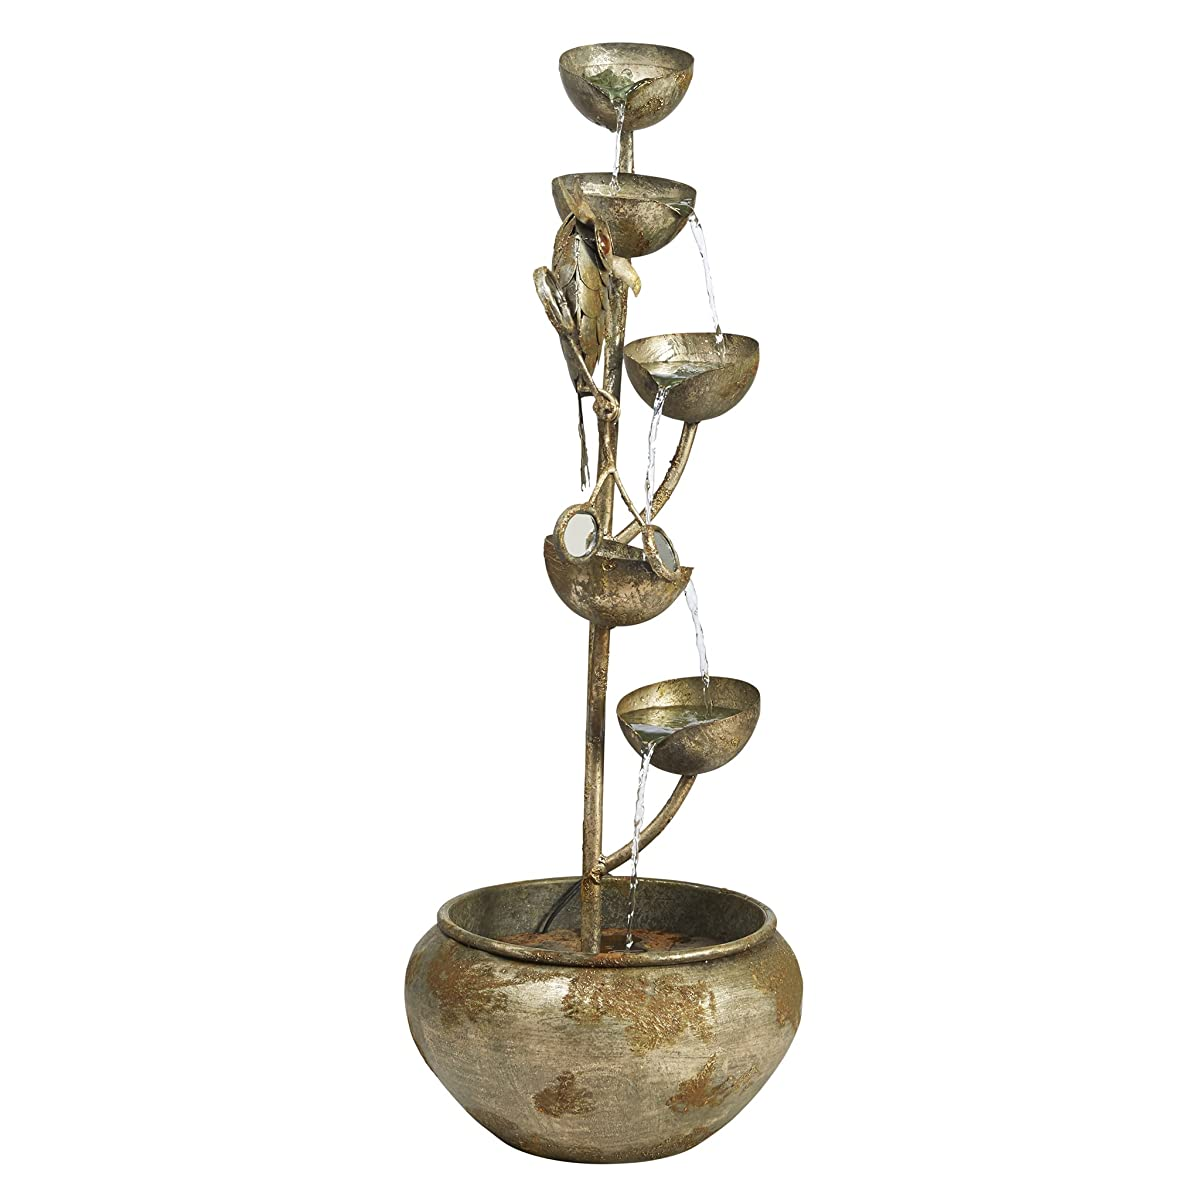 Water Fountain - Nearly 3 Foot Tall Whooos Watching Owl Decor Metal Fountain - Outdoor Water Feature